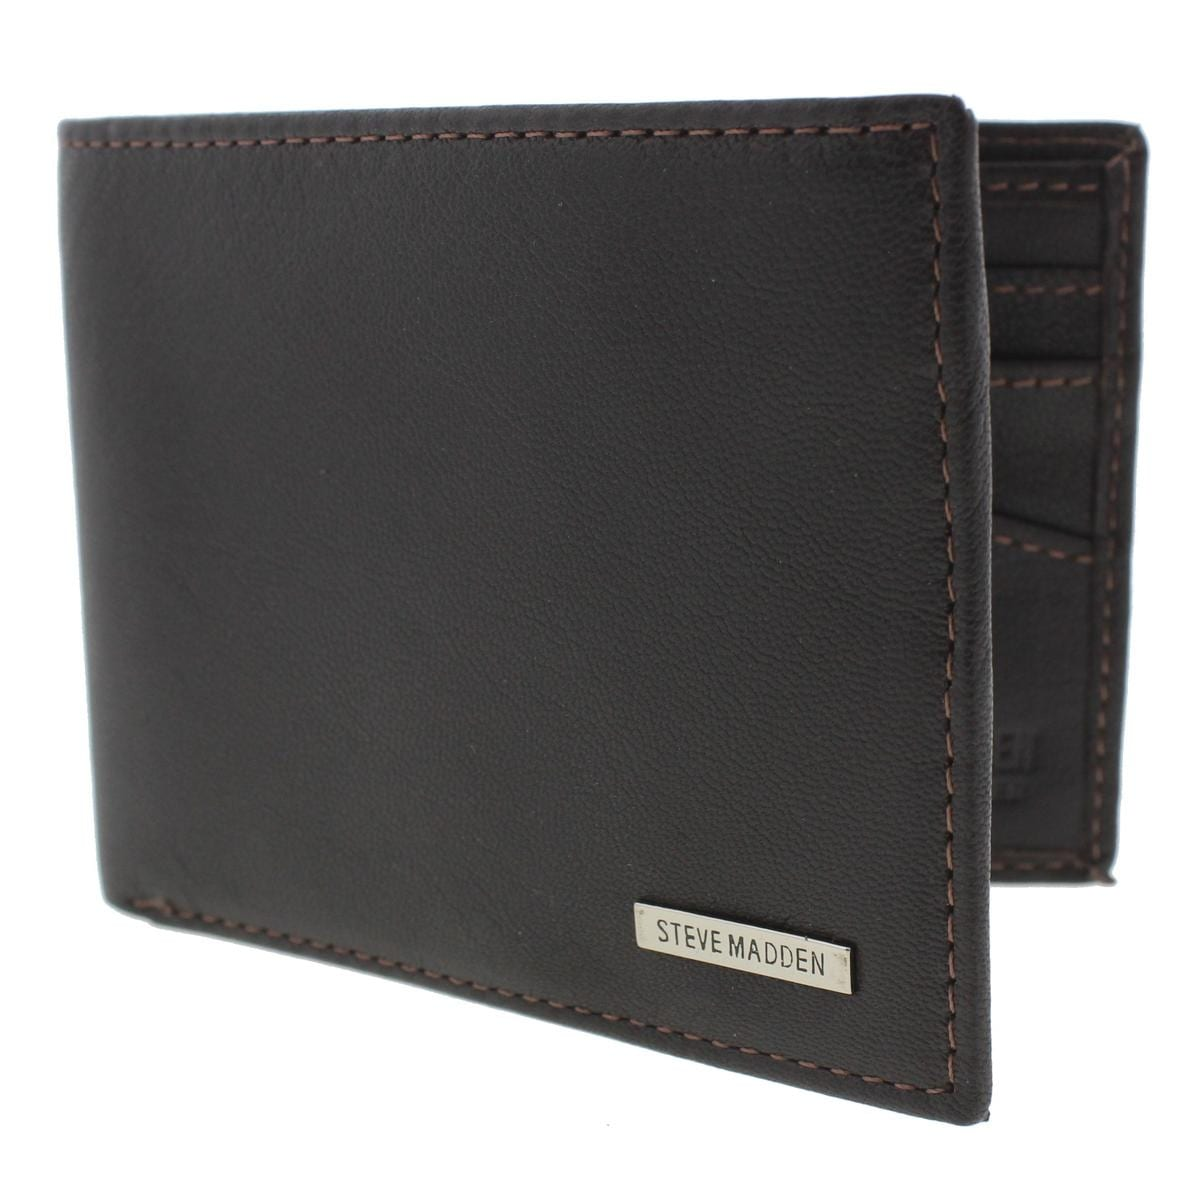 af73ca86e4 Shop Steve Madden Mens Bifold Wallet Leather RFID Protection - O/S - Free  Shipping On Orders Over $45 - Overstock - 19487410